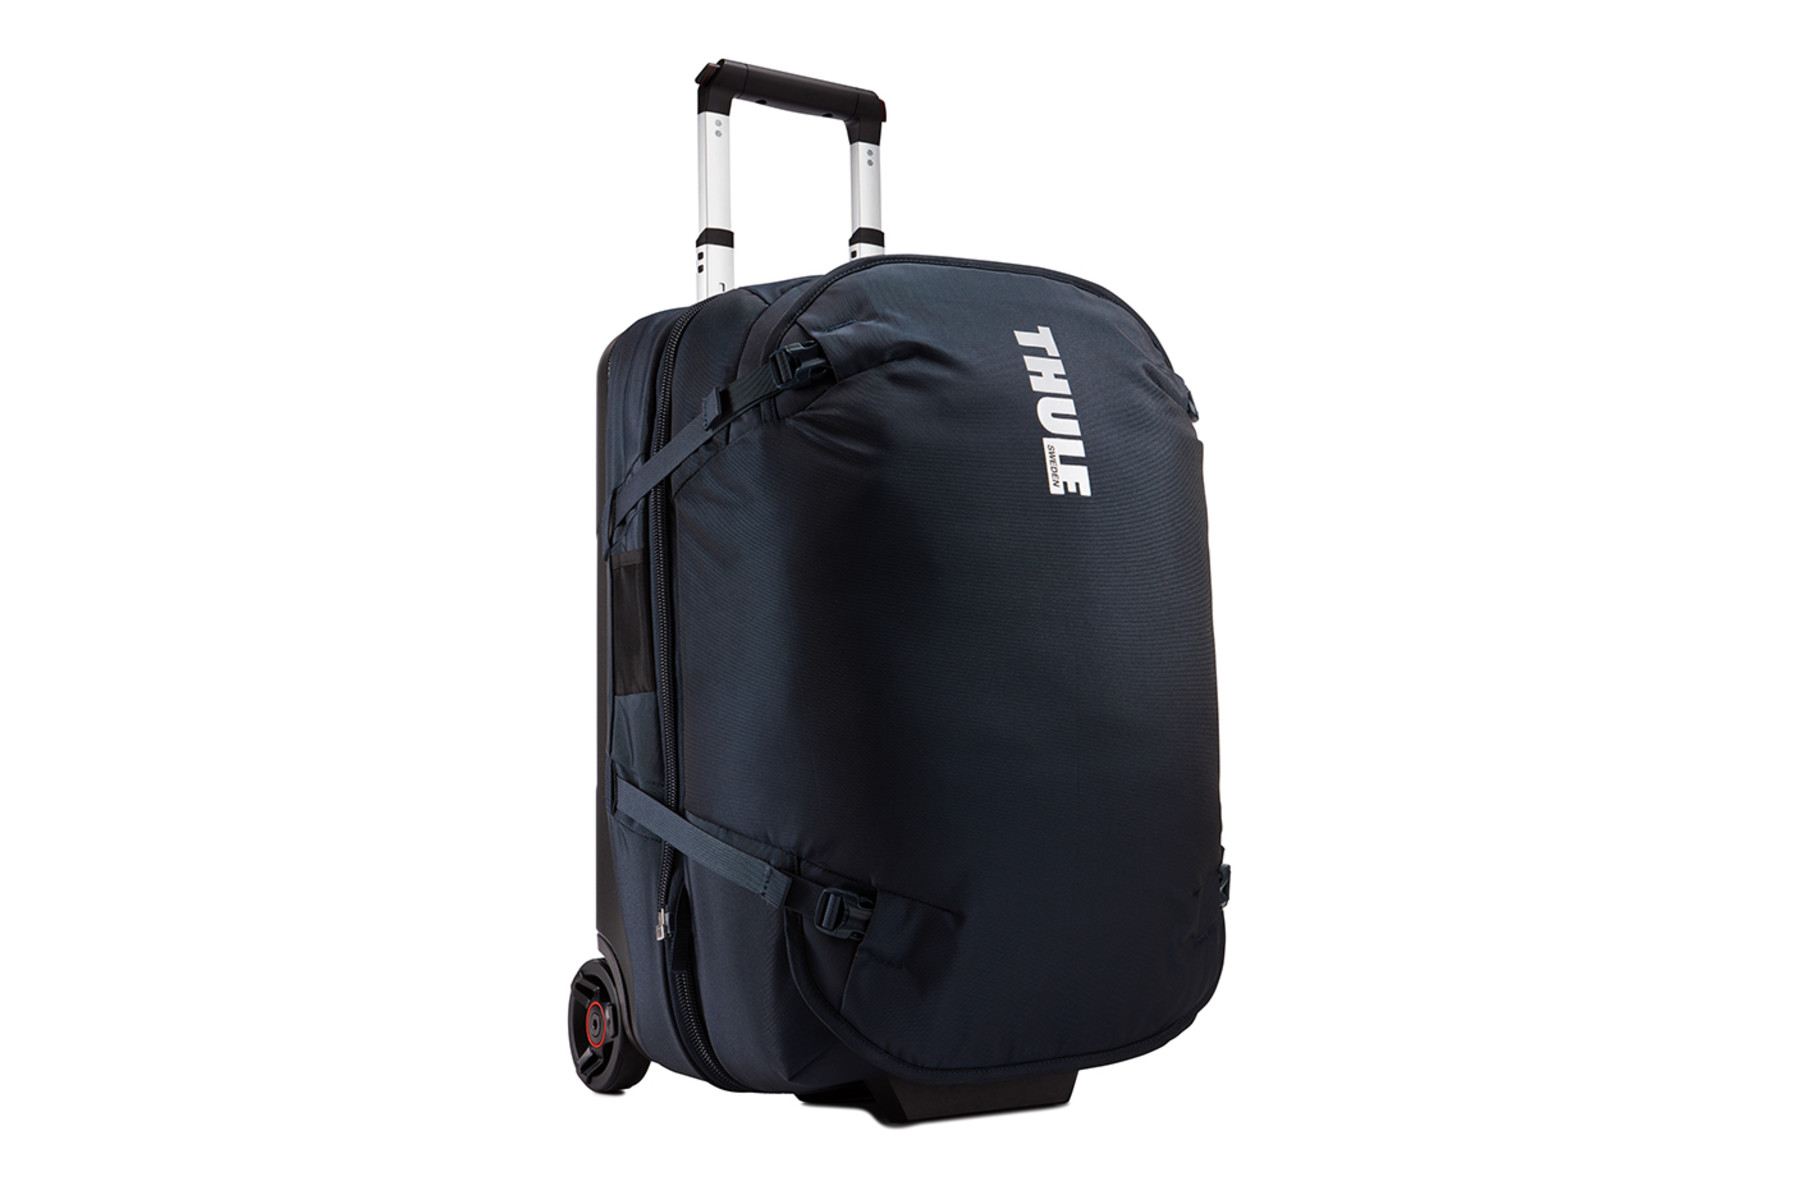 Thule_Subterra_Luggage_55cm22in